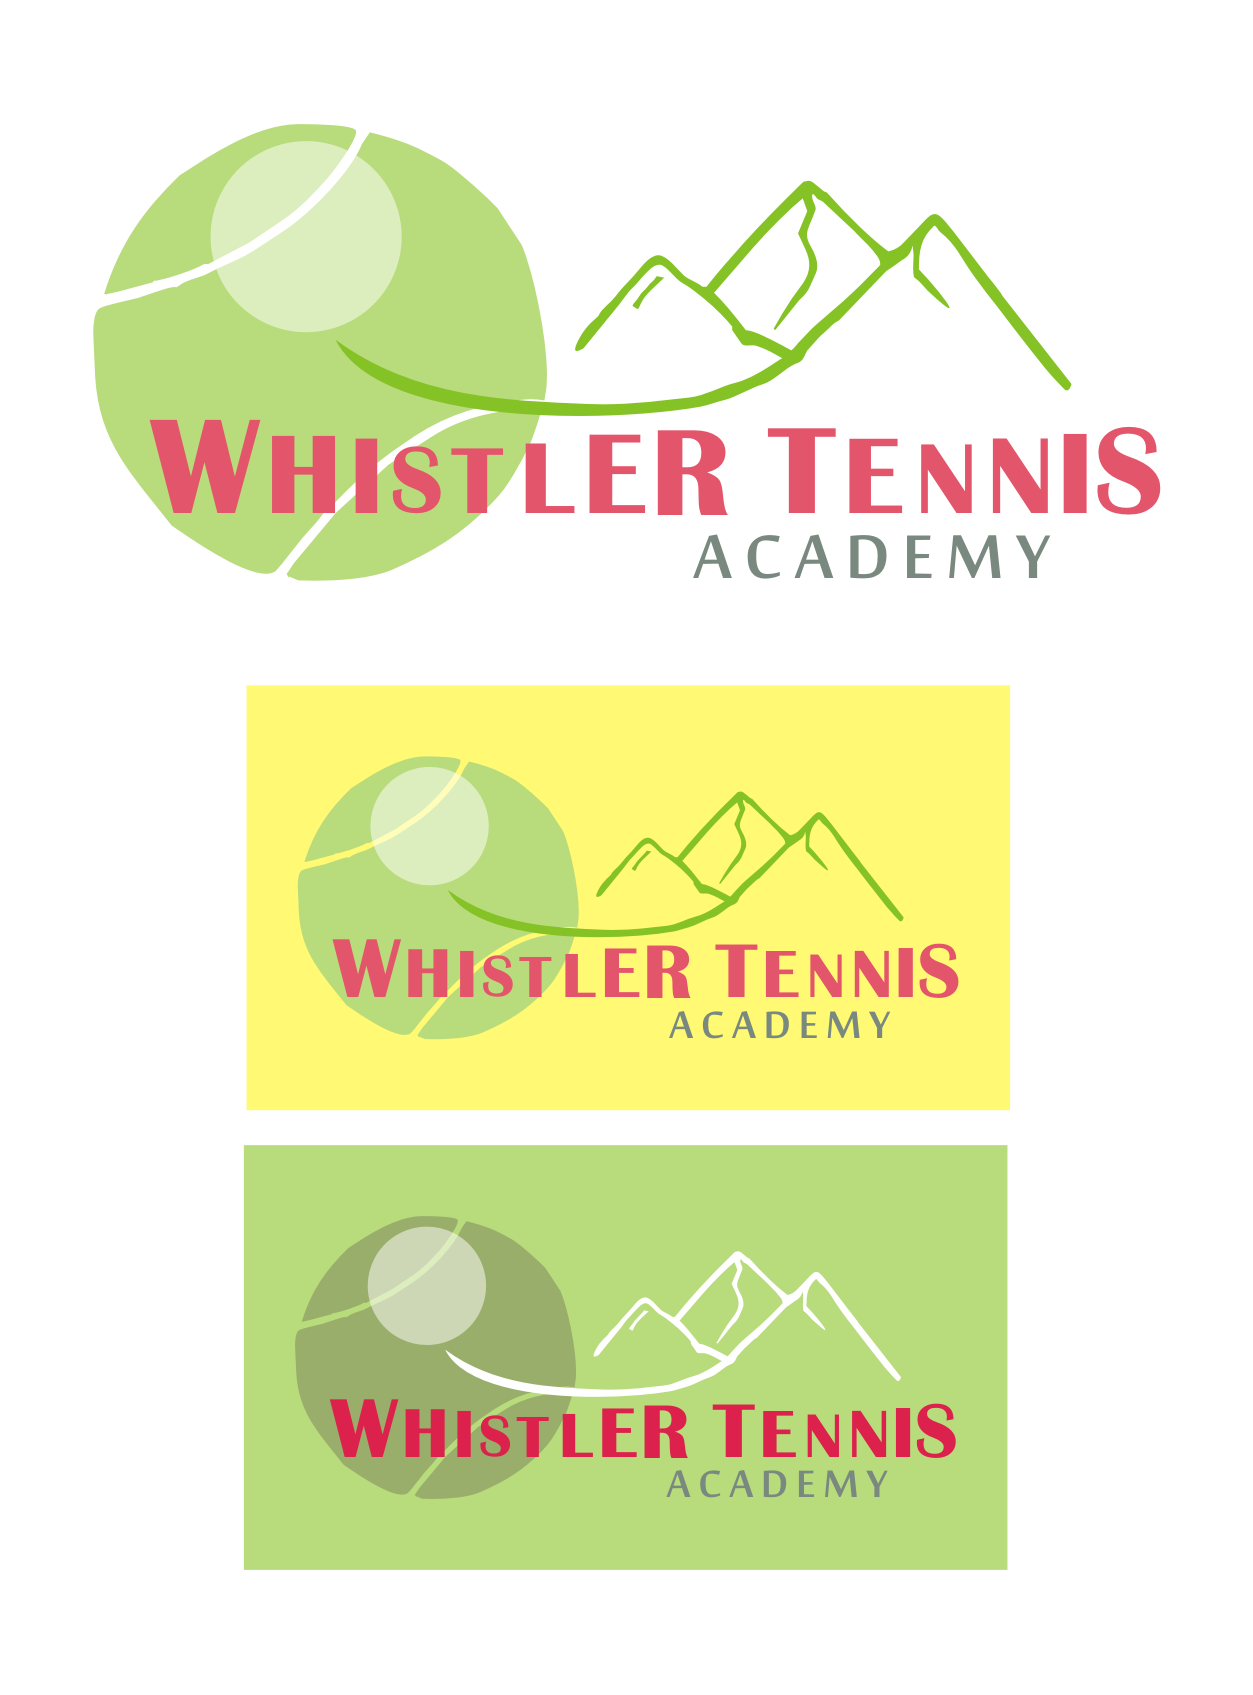 Logo Design by Nthus Nthis - Entry No. 37 in the Logo Design Contest Imaginative Logo Design for Whistler Tennis Academy.